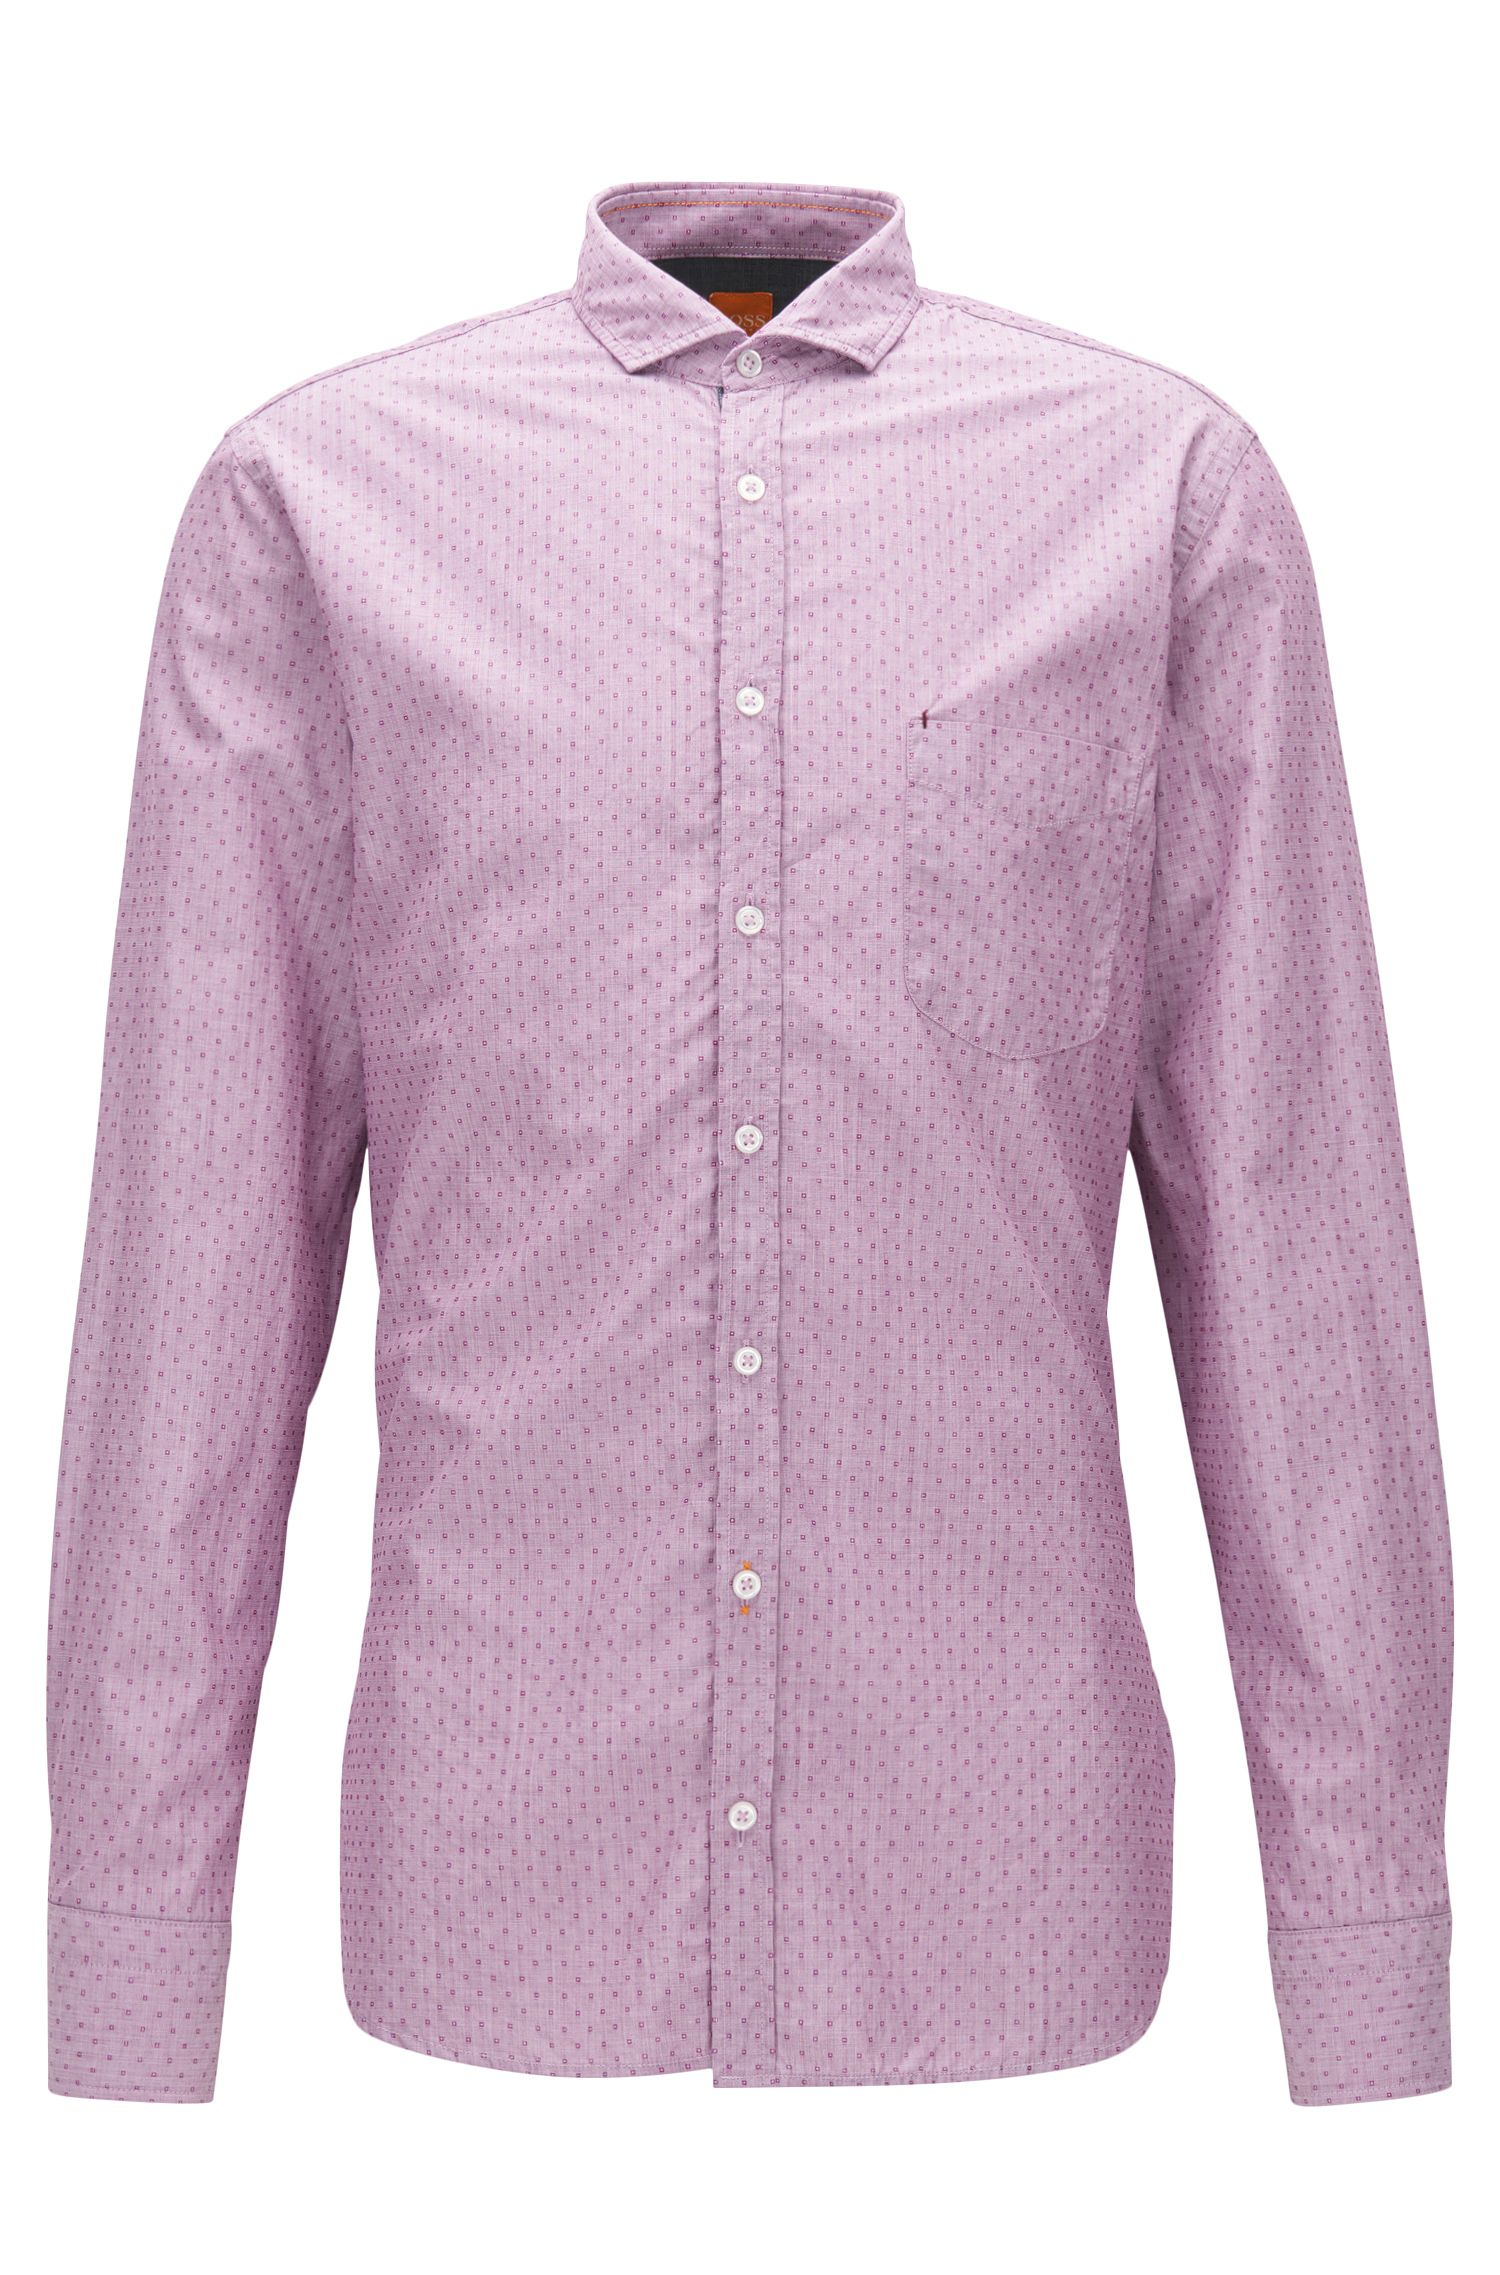 Patterned End-On-End Cotton Button Down Shirt, Slim Fit | Catitude